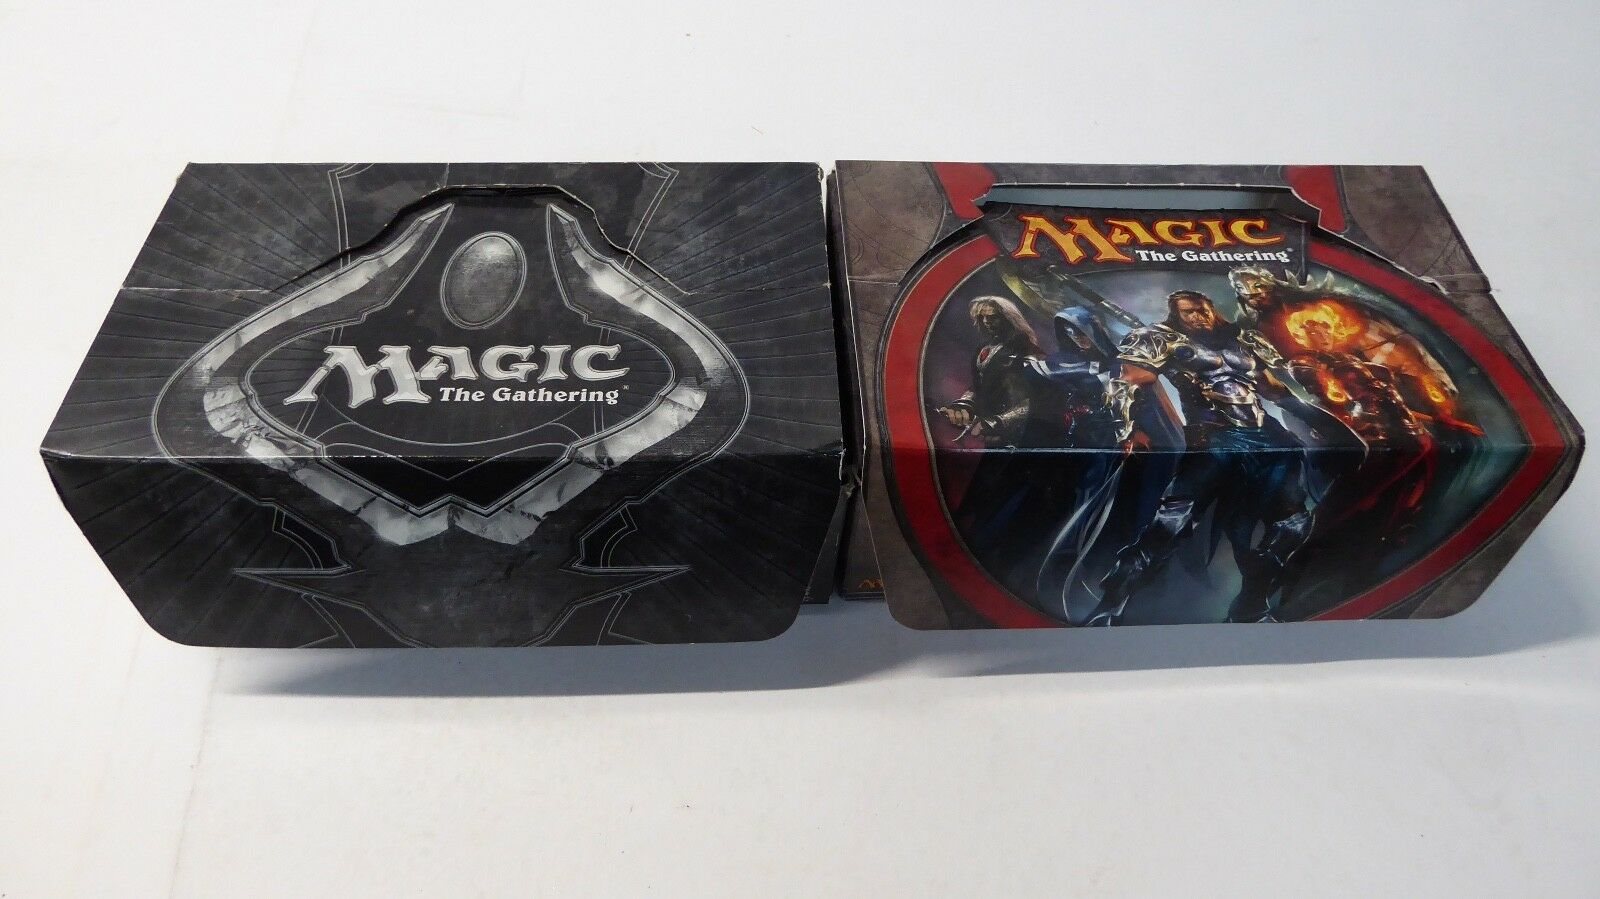 2 OPENED BOXES OF MAGIC CARDS - 2012 & 2013 CORE SETS - LOOSE CARDS - READ DESC.